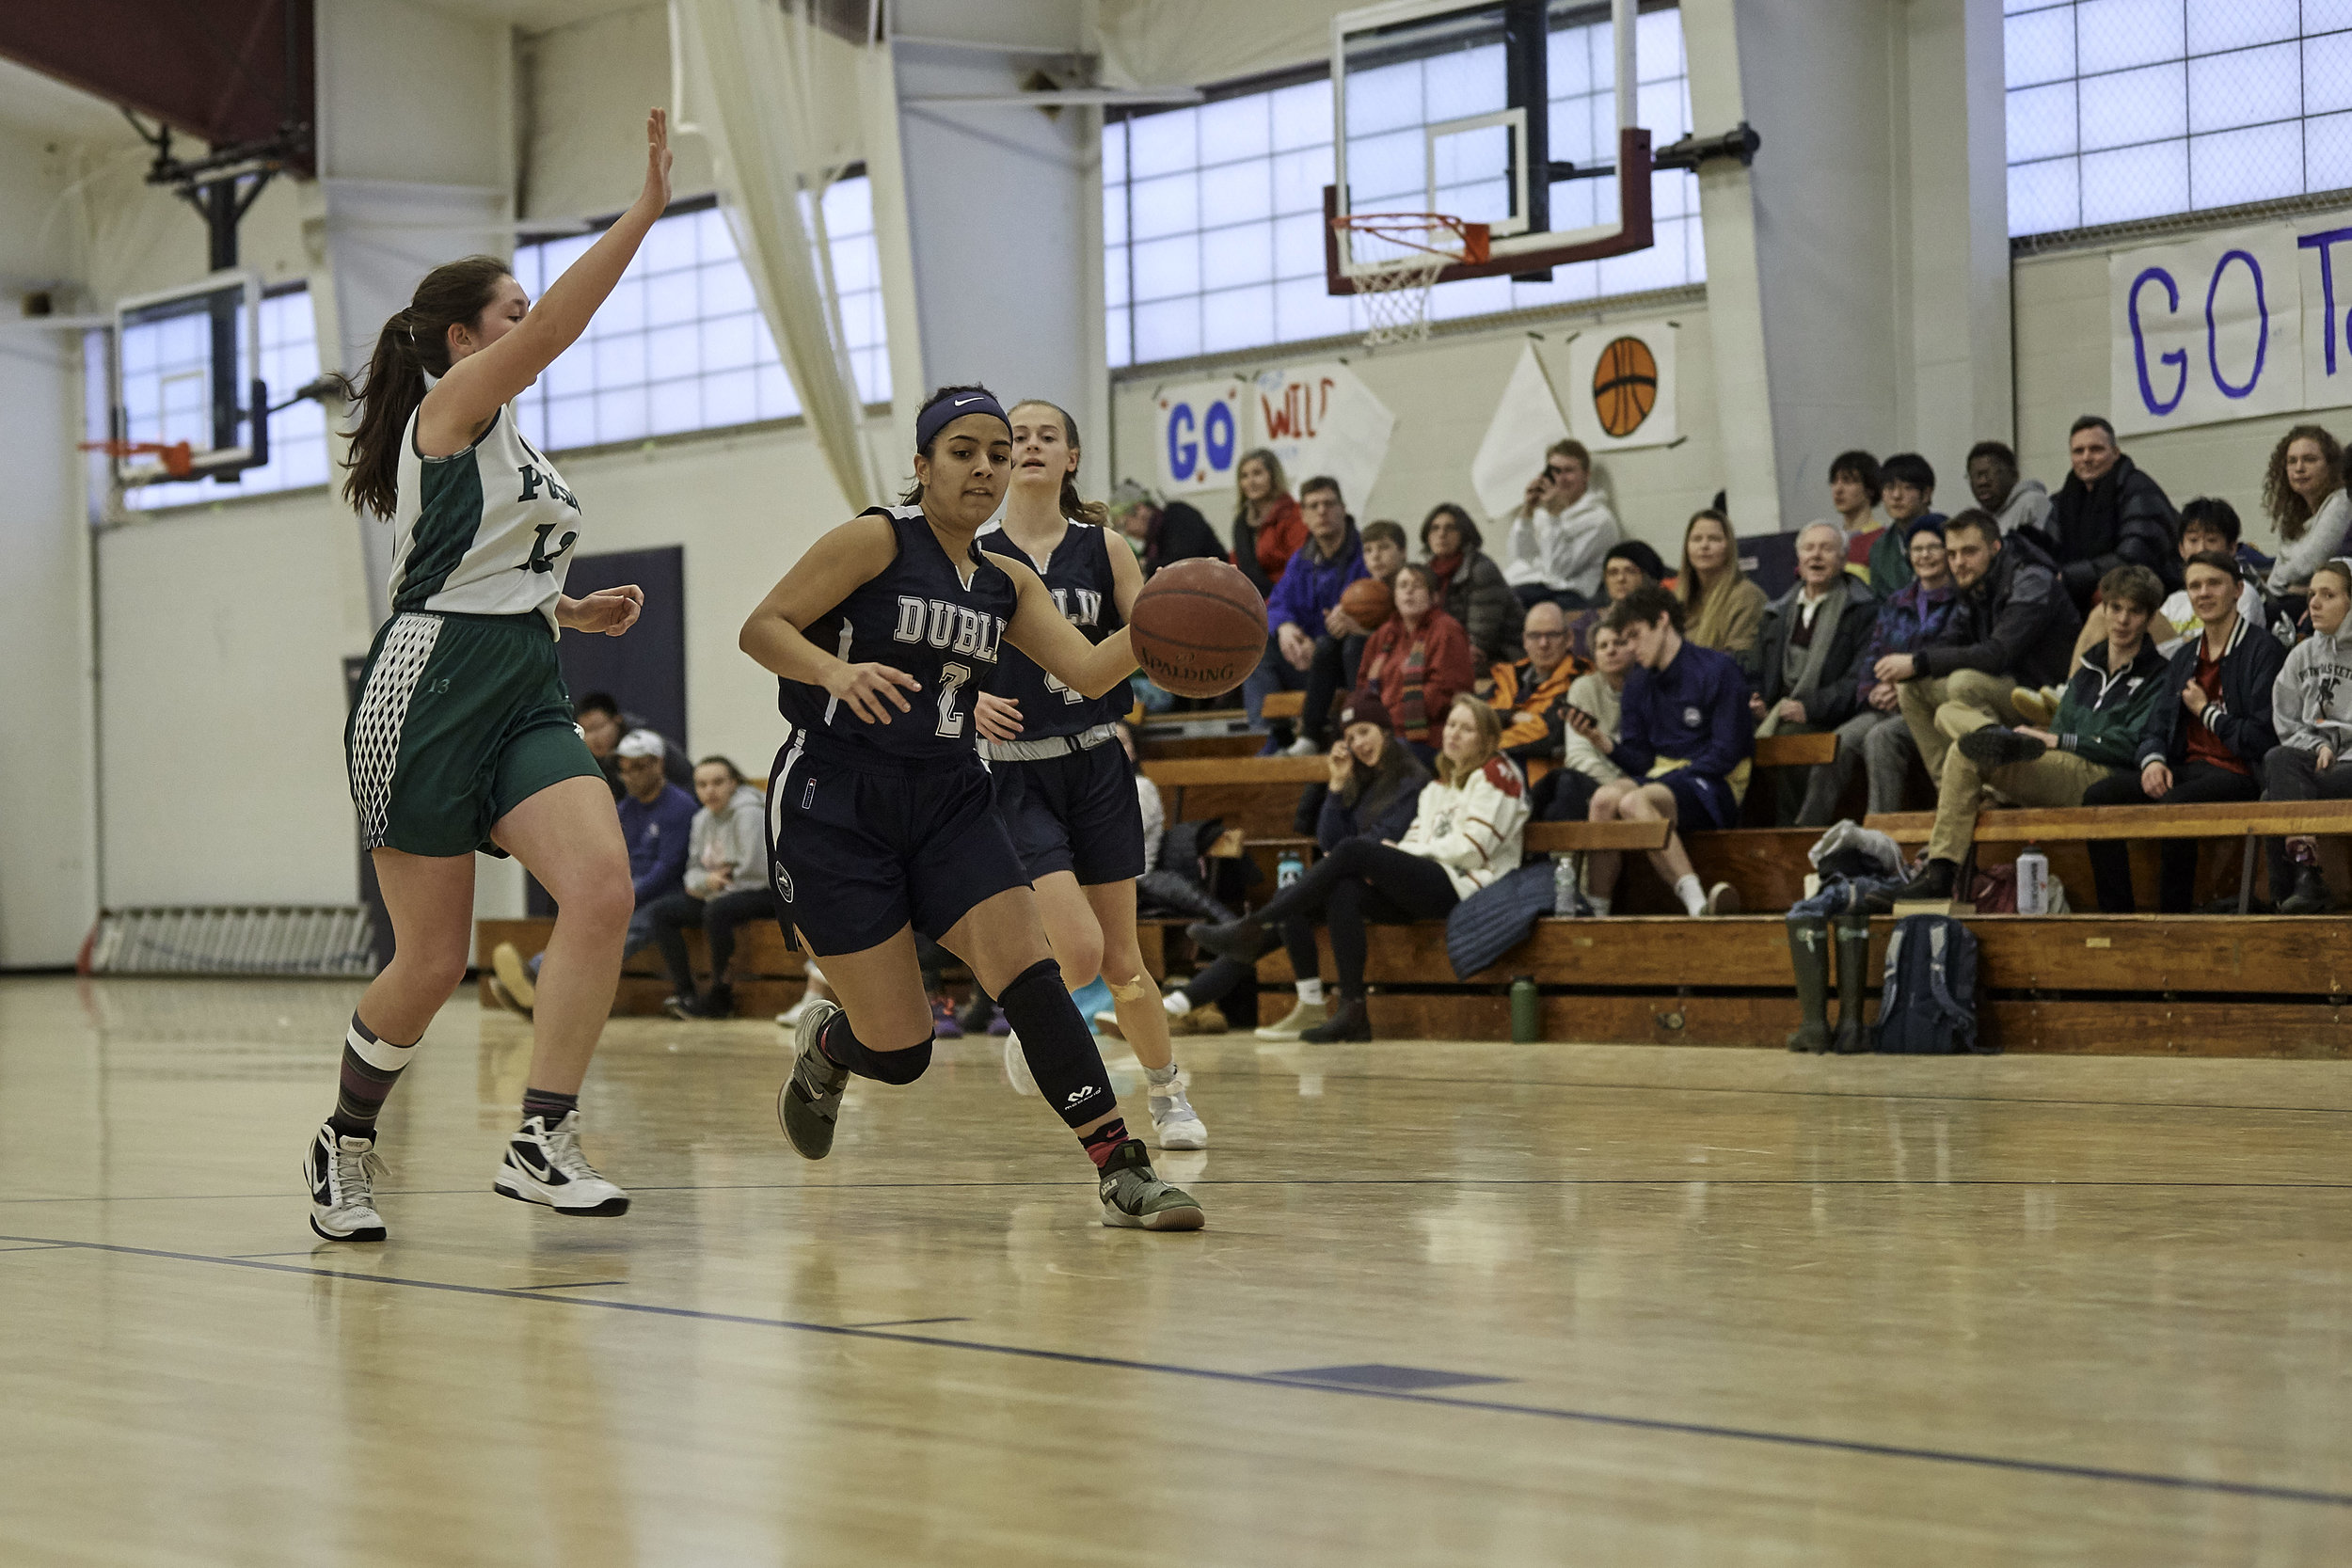 Basketball vs Putney School, February 9, 2019 - 167282.jpg